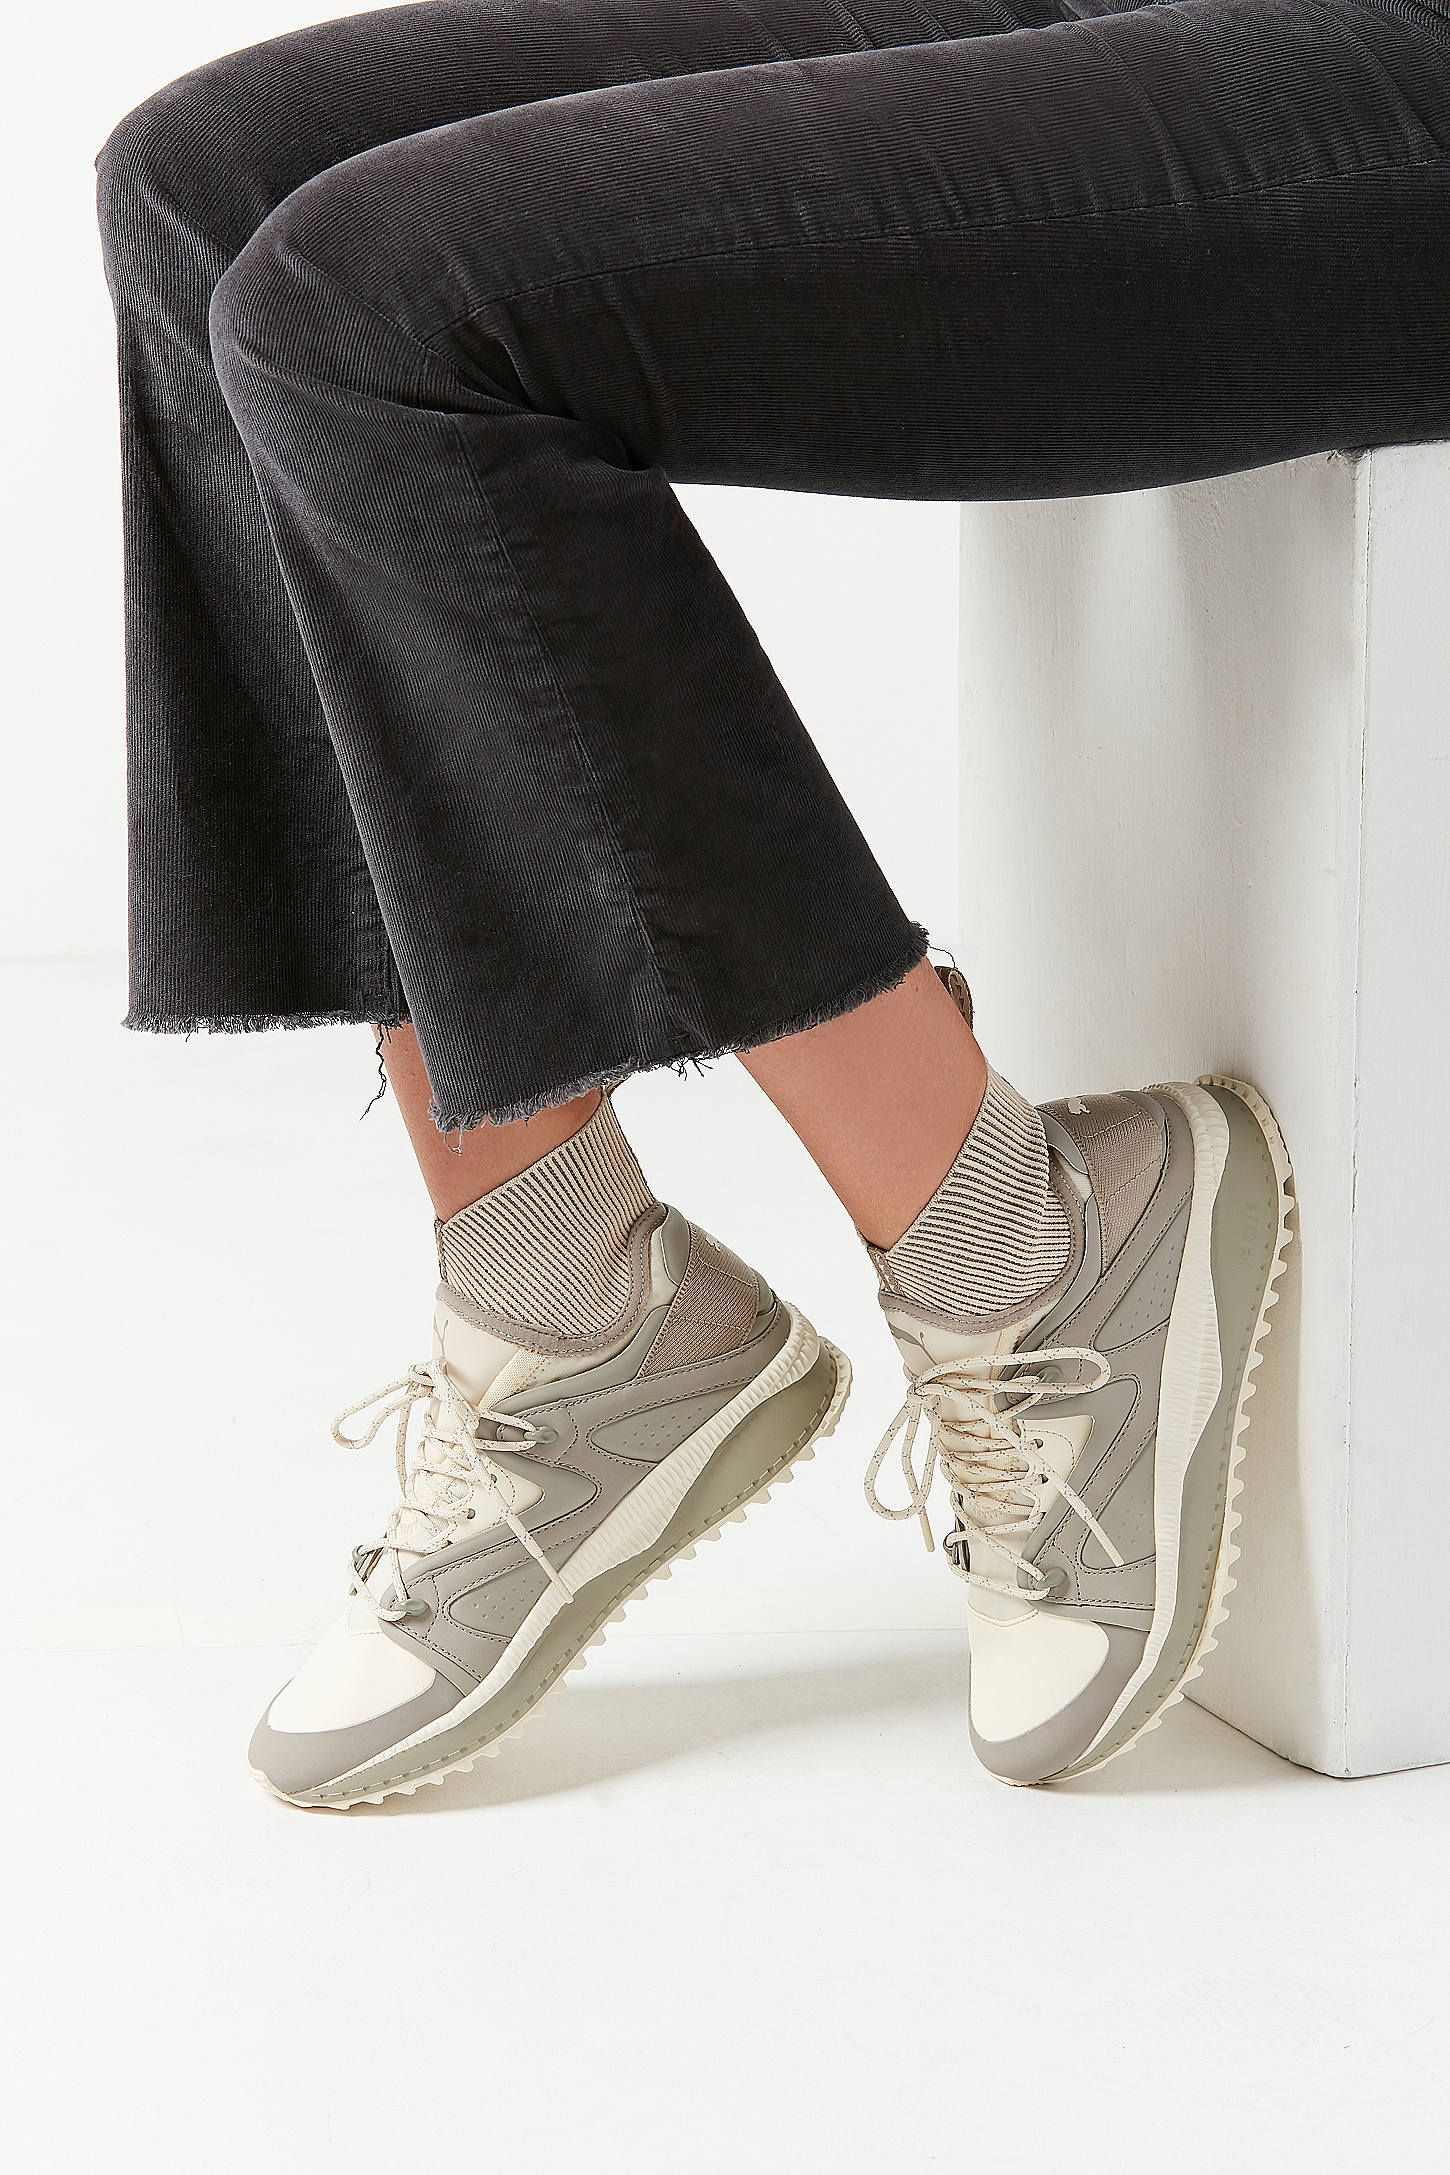 4b9f829cd64eb9 Shop Puma Tsugi Kori Hi Training Sneakerboot at Urban Outfitters today. We  carry all the latest styles